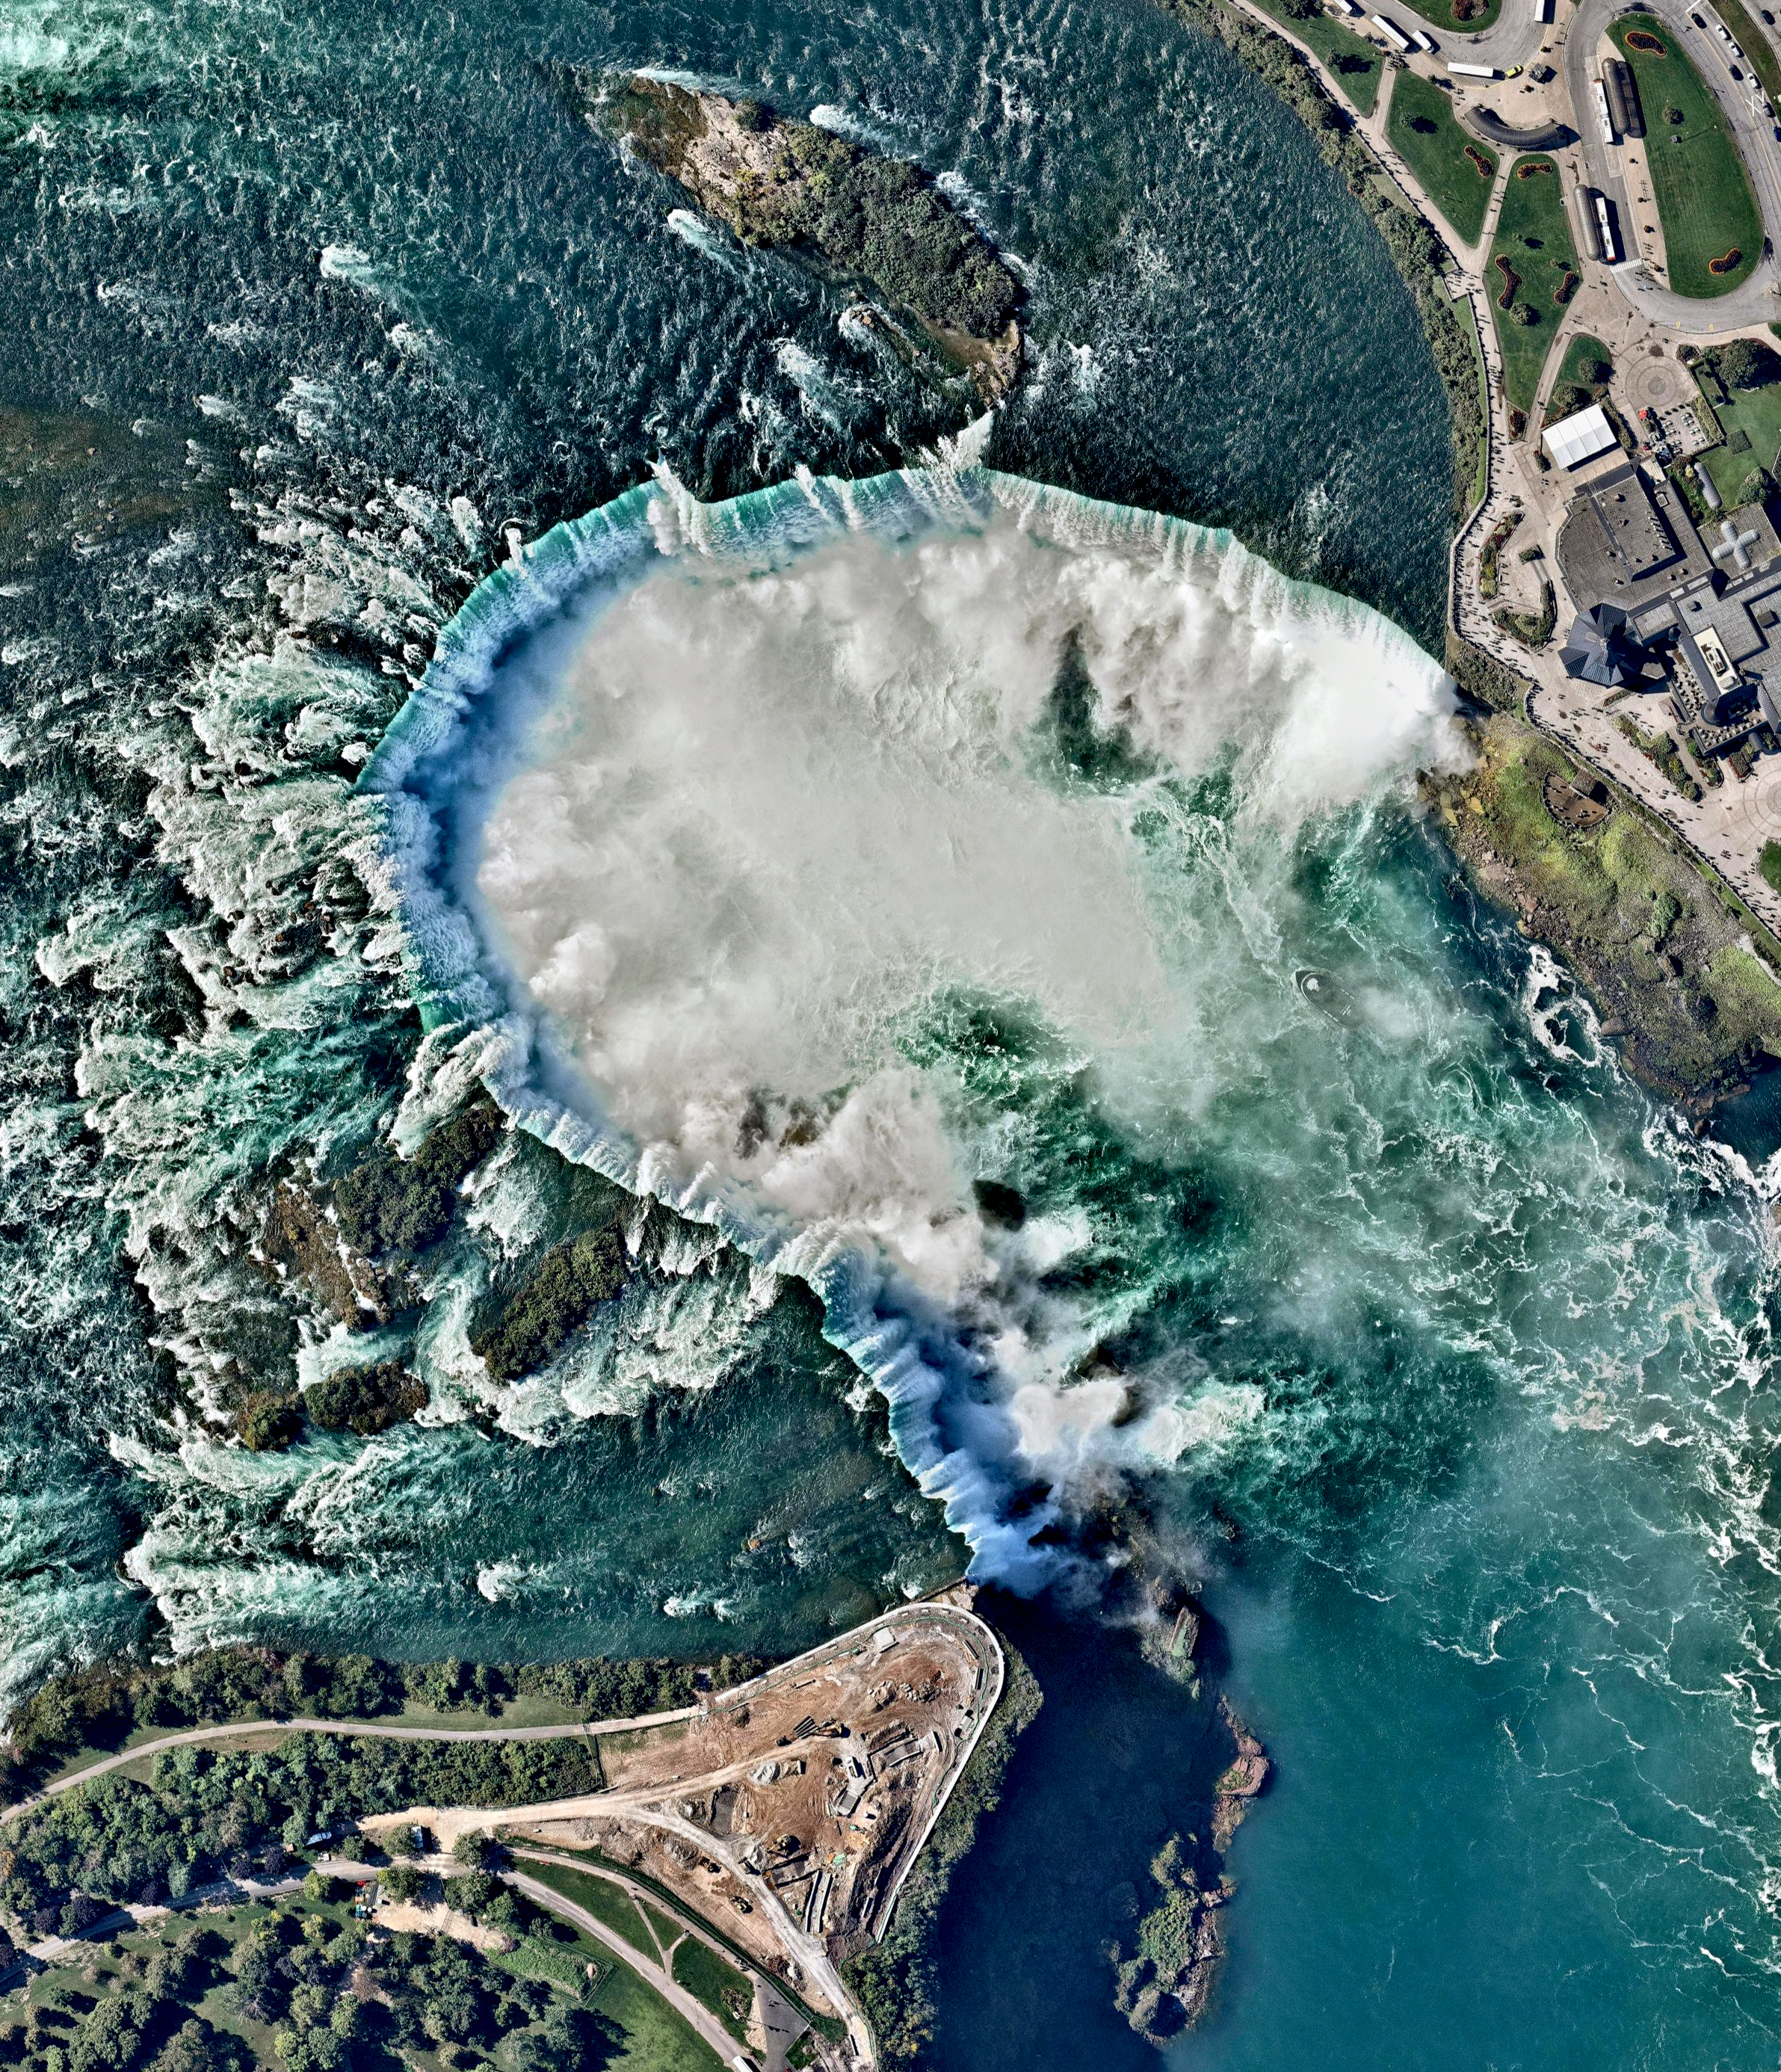 Continuing with our favorite Overviews of 2016, here is one from October of Niagara Falls — the collective name for three waterfalls that straddle the border between Ontario, Canada and the United States. Horseshoe Falls is seen here. The falls have the highest flow rate of any waterfall in the world, with a vertical drop of more than 165 feet (50 m). The Maid of the Mist, also visible here, is a boat that has carried passengers into the rapids below the falls since 1846.  Source imagery: Nearmap